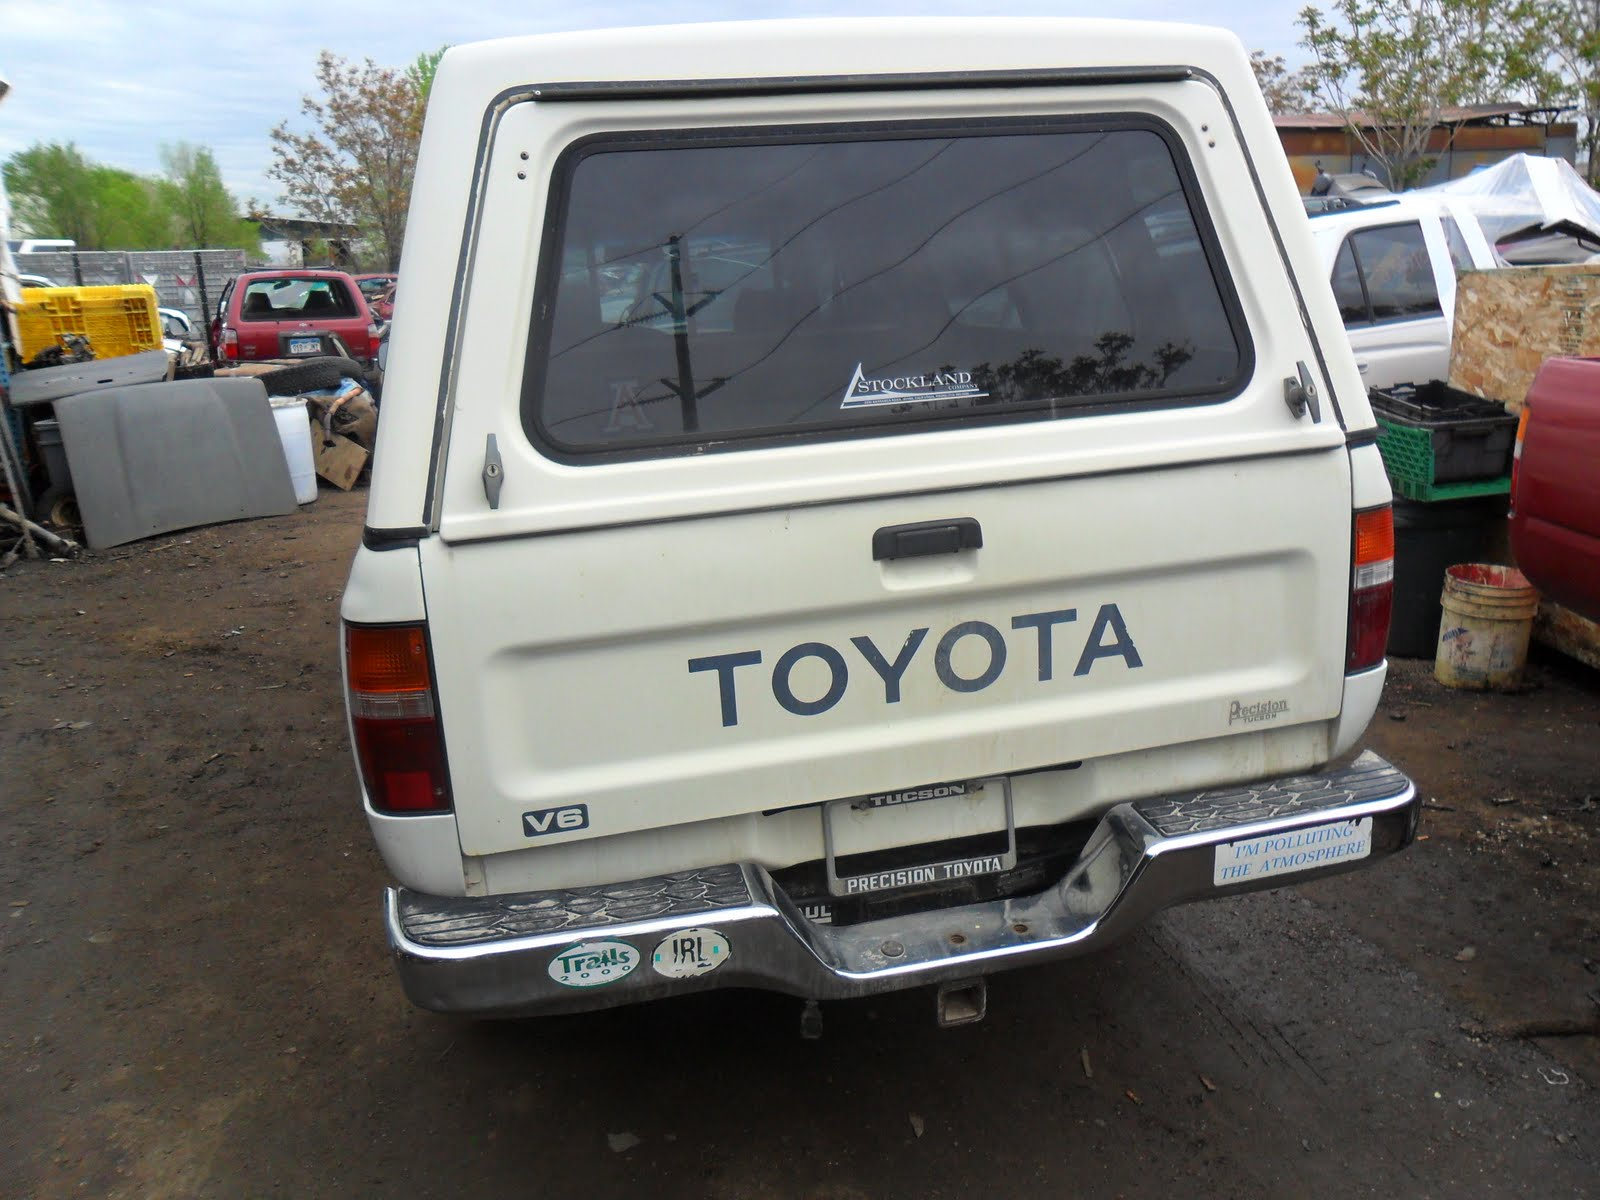 Sensational New Arrivals At Jims Used Toyota Truck Parts 1992 White Toyota Wiring Cloud Hisonepsysticxongrecoveryedborg